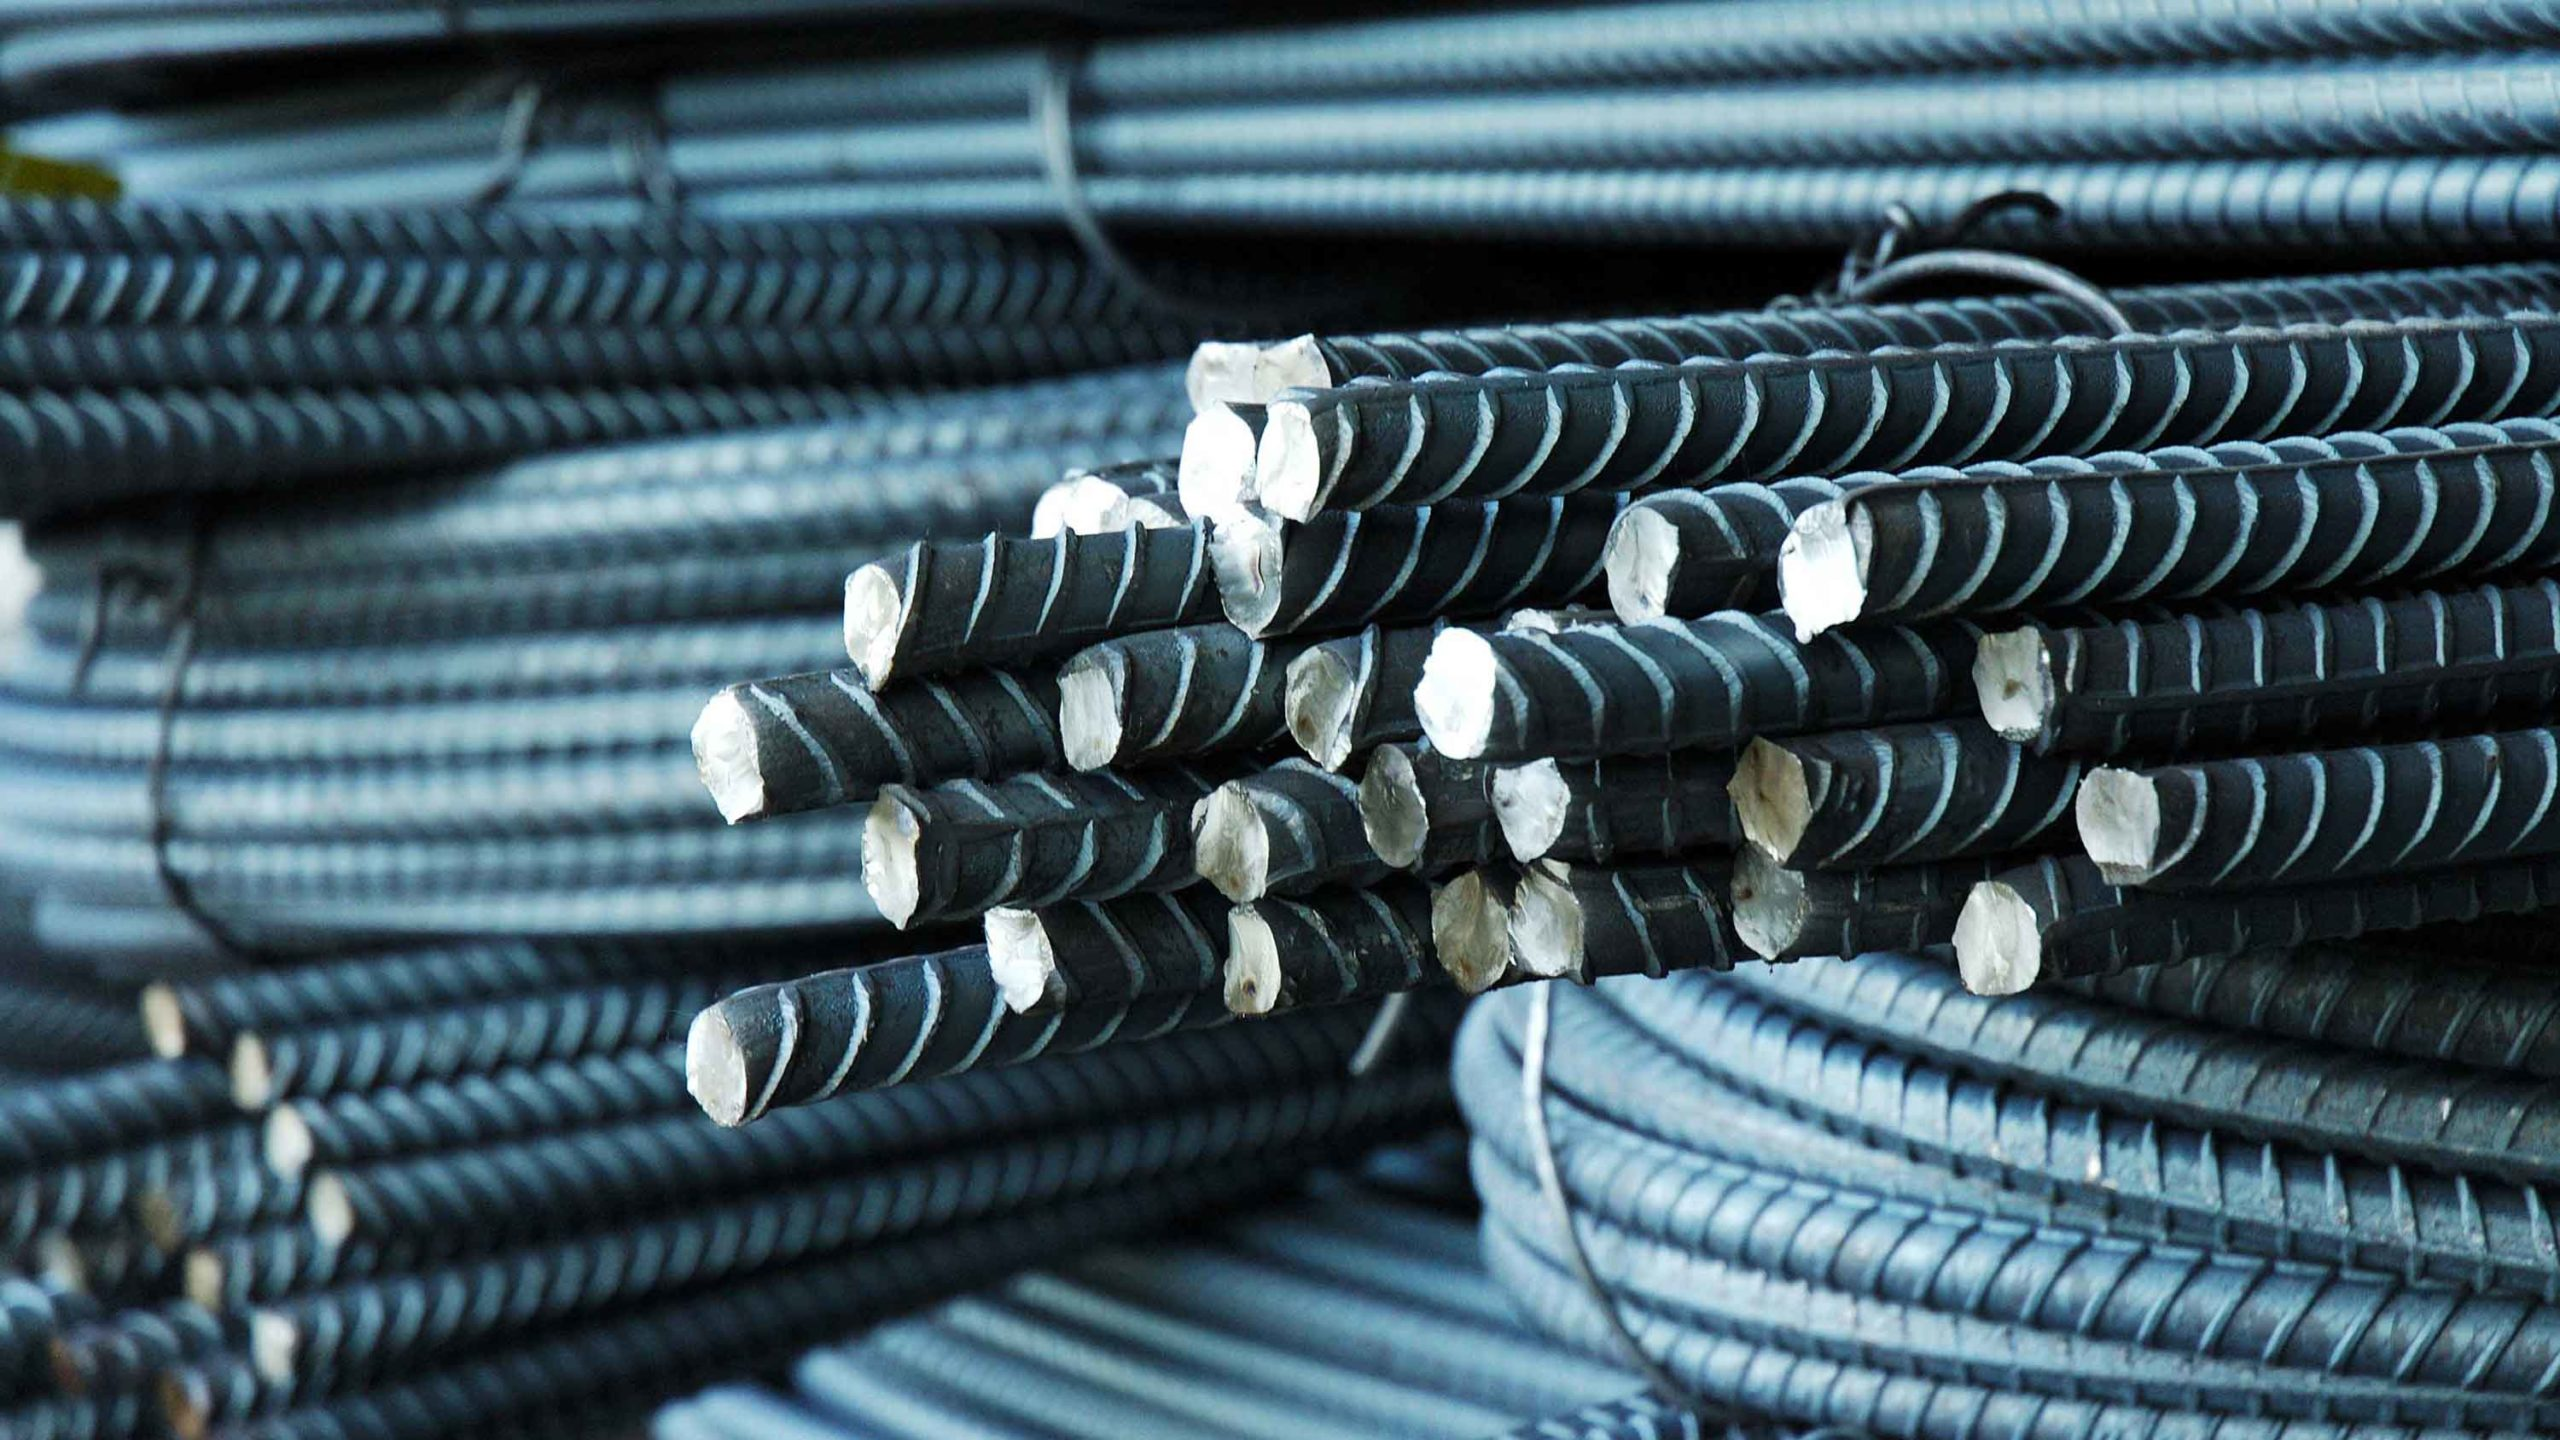 BUY BEST TATA TMT STEEL BARS